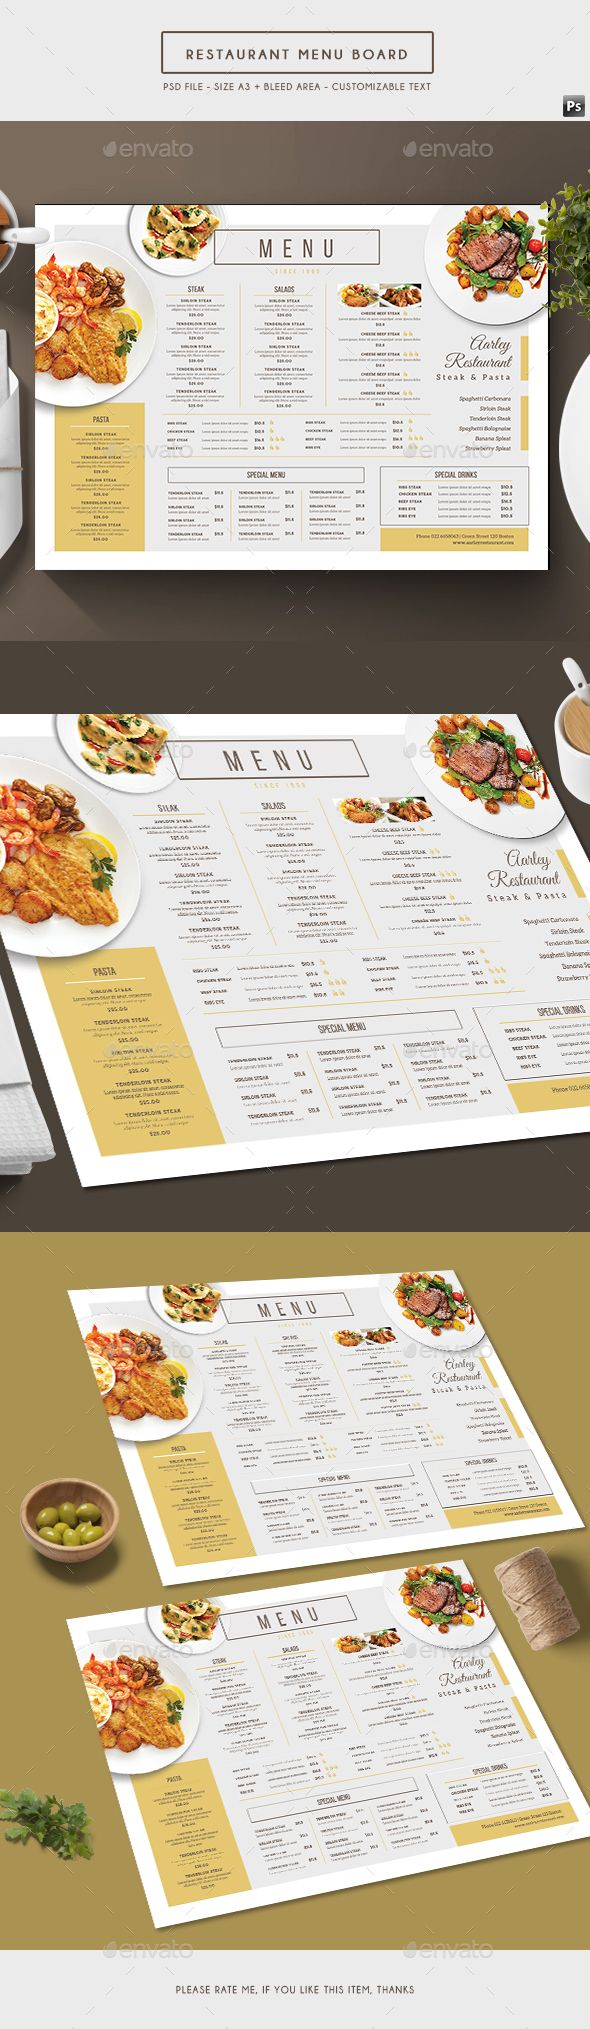 Simple Restaurant Menu Board 339 best print